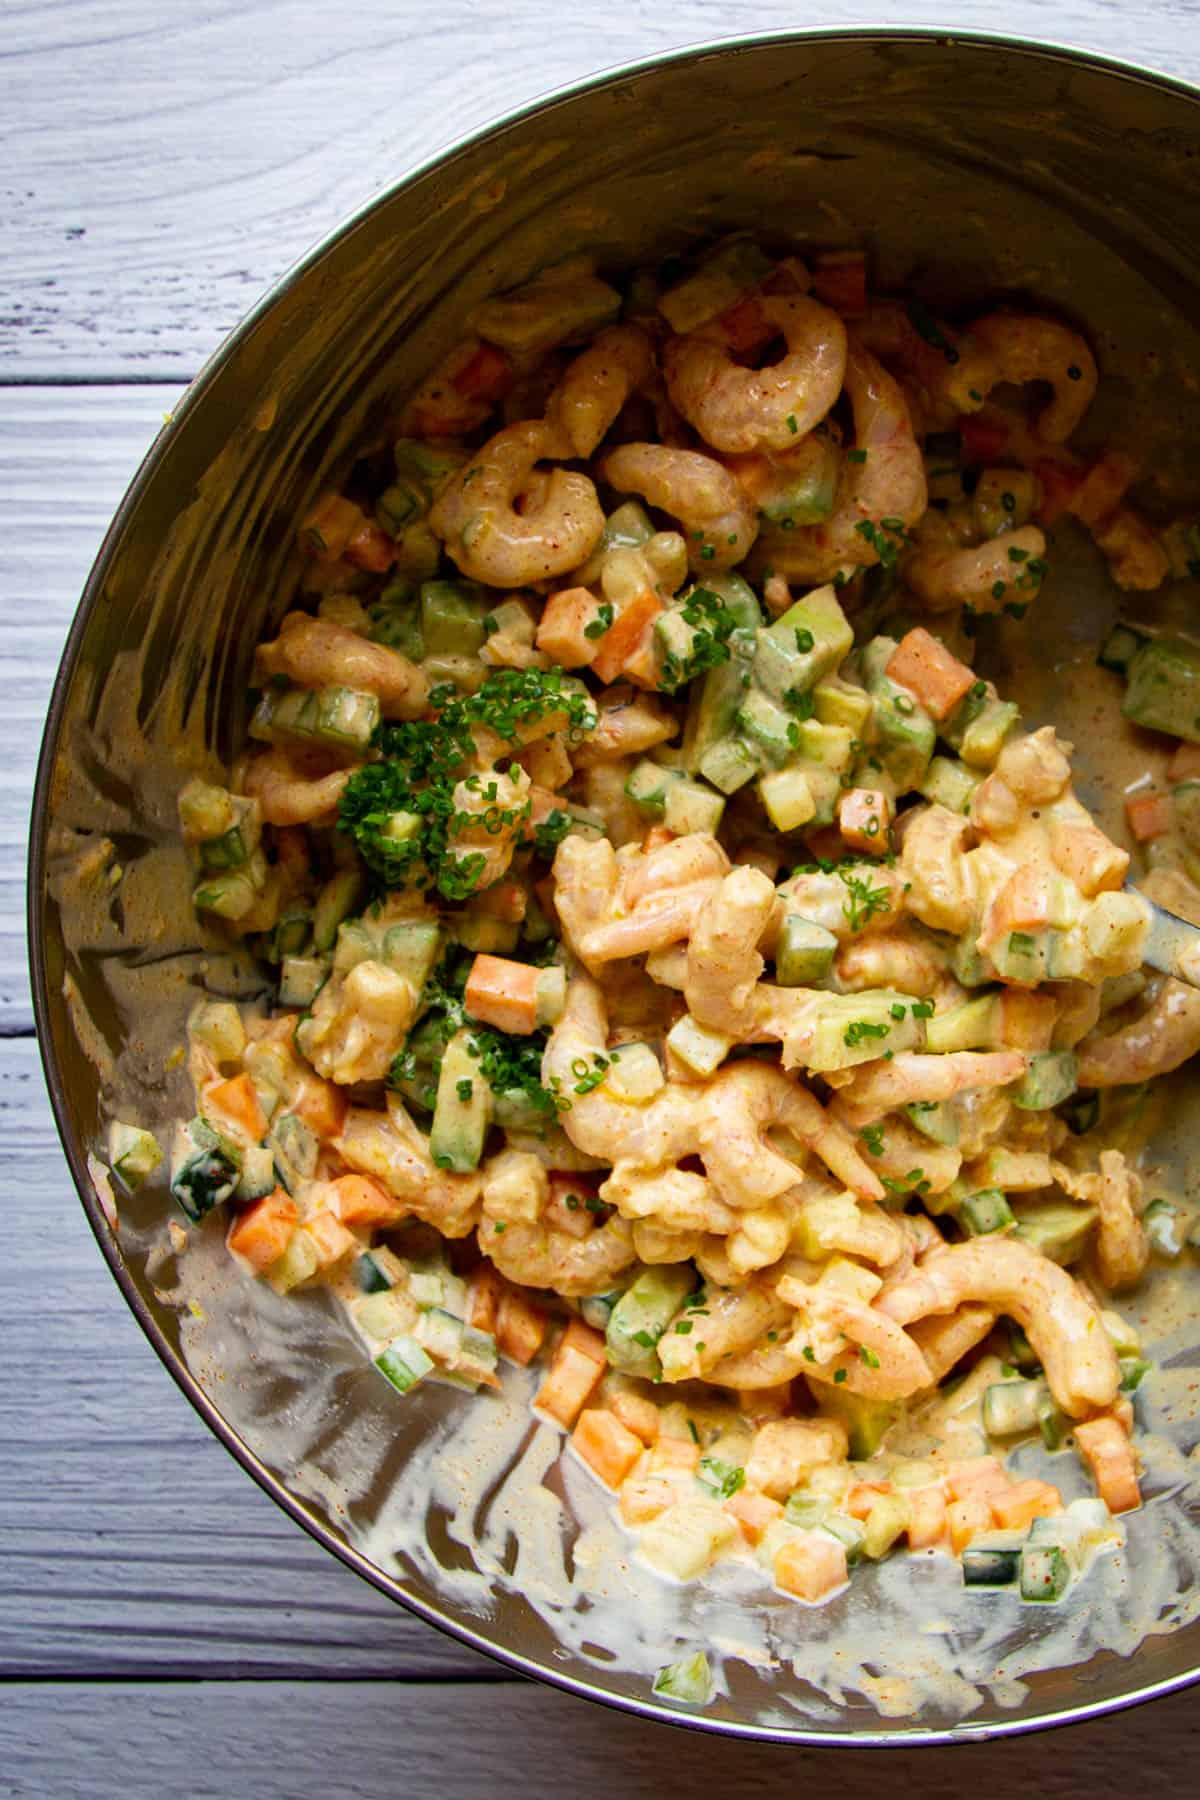 All of the ingredients for the shrimp salad mixed together.